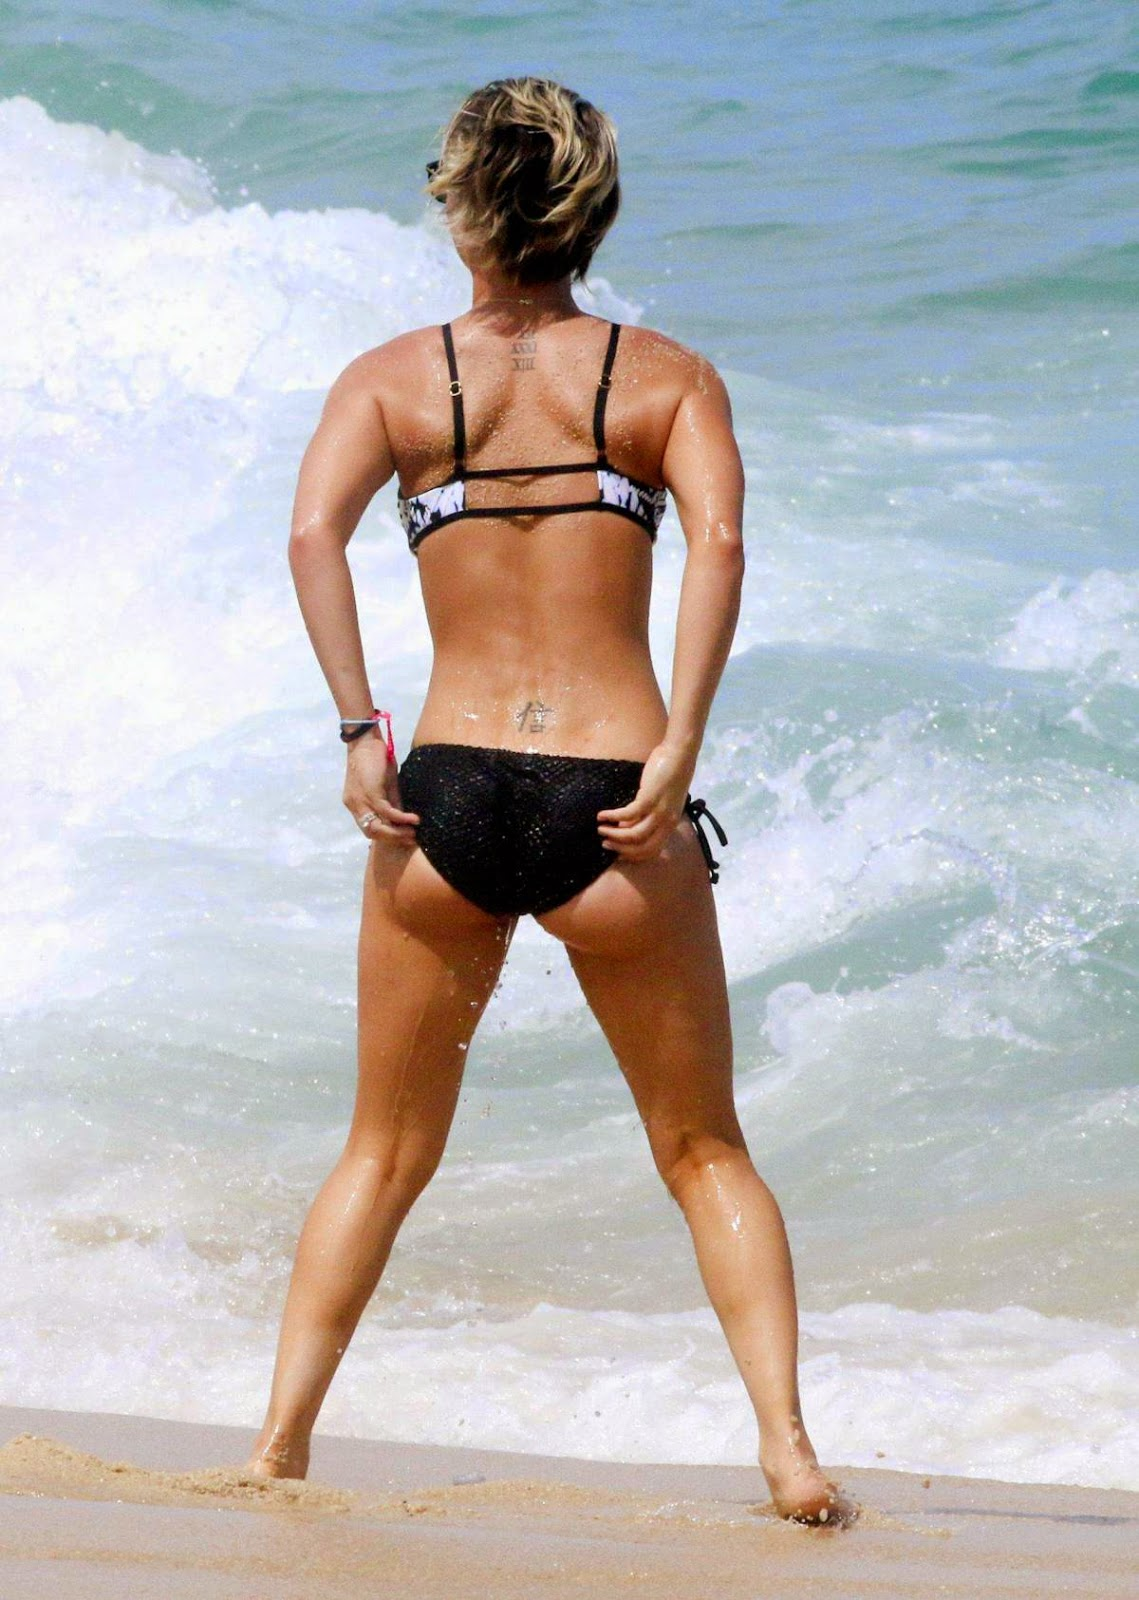 Kaley Cuoco HOT Bikini Candids in Mexico